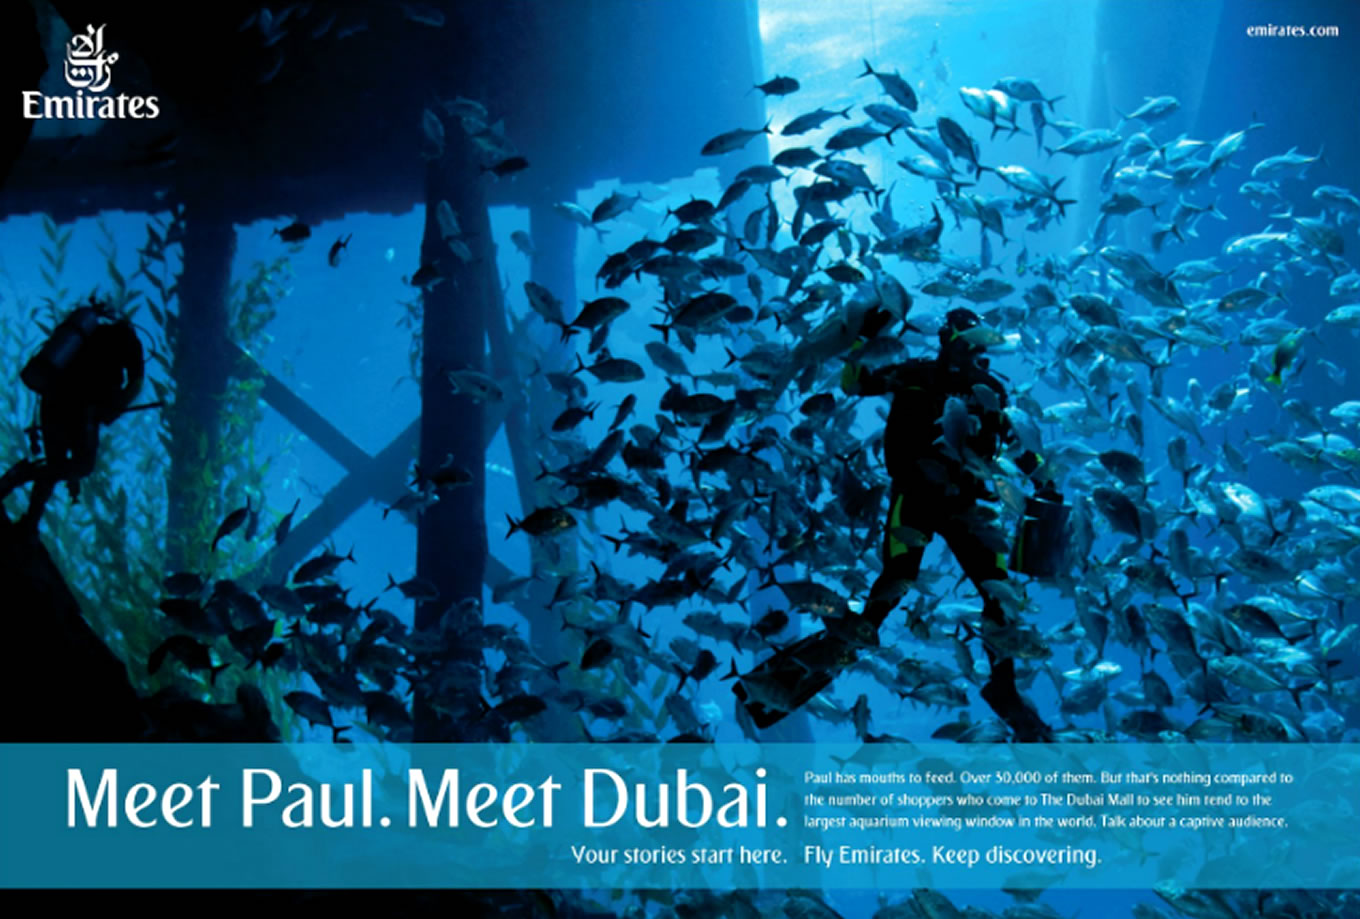 Meet Paul, Meet Dubai Advertising Campaign by Emirates